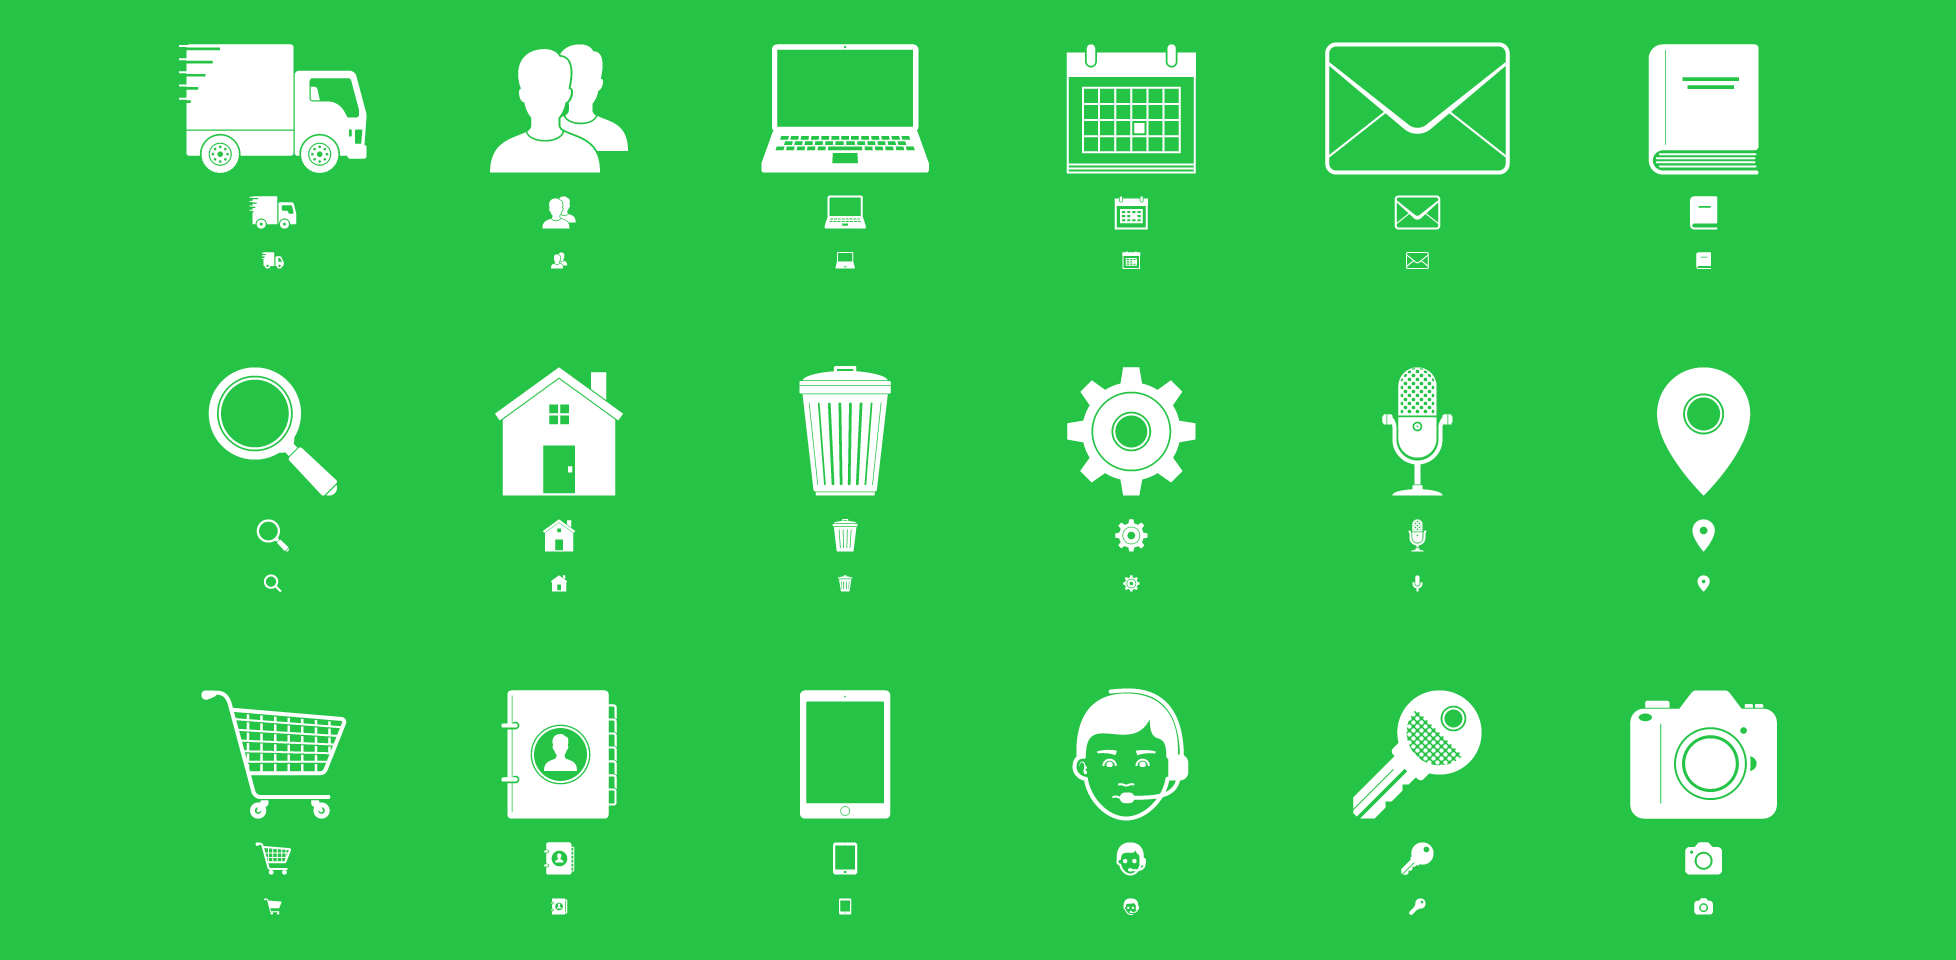 Free download: 30 responsive icons by icons8